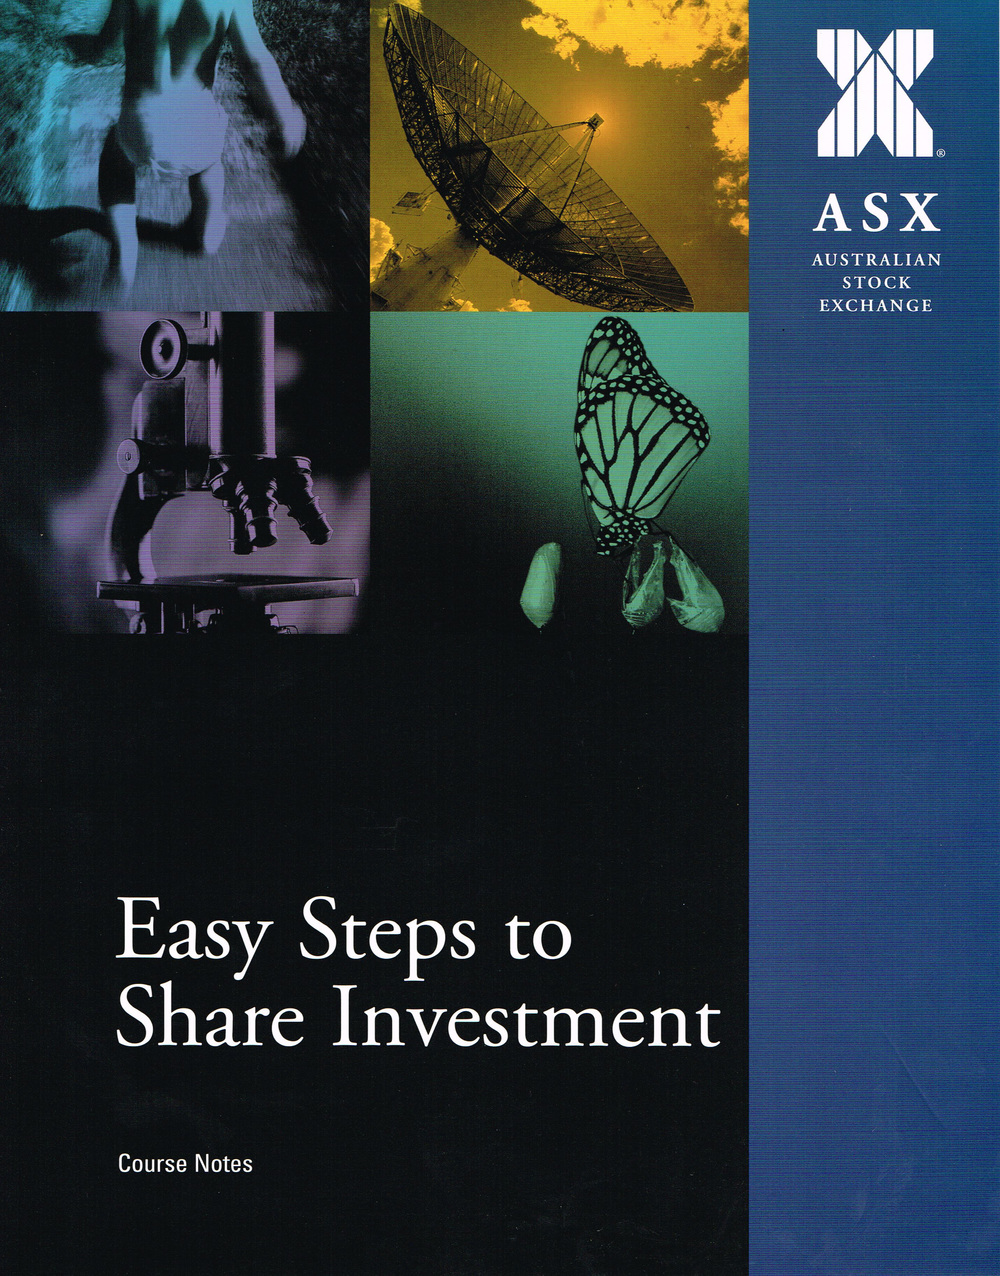 ASX Easy Steps to Share Investment.jpg